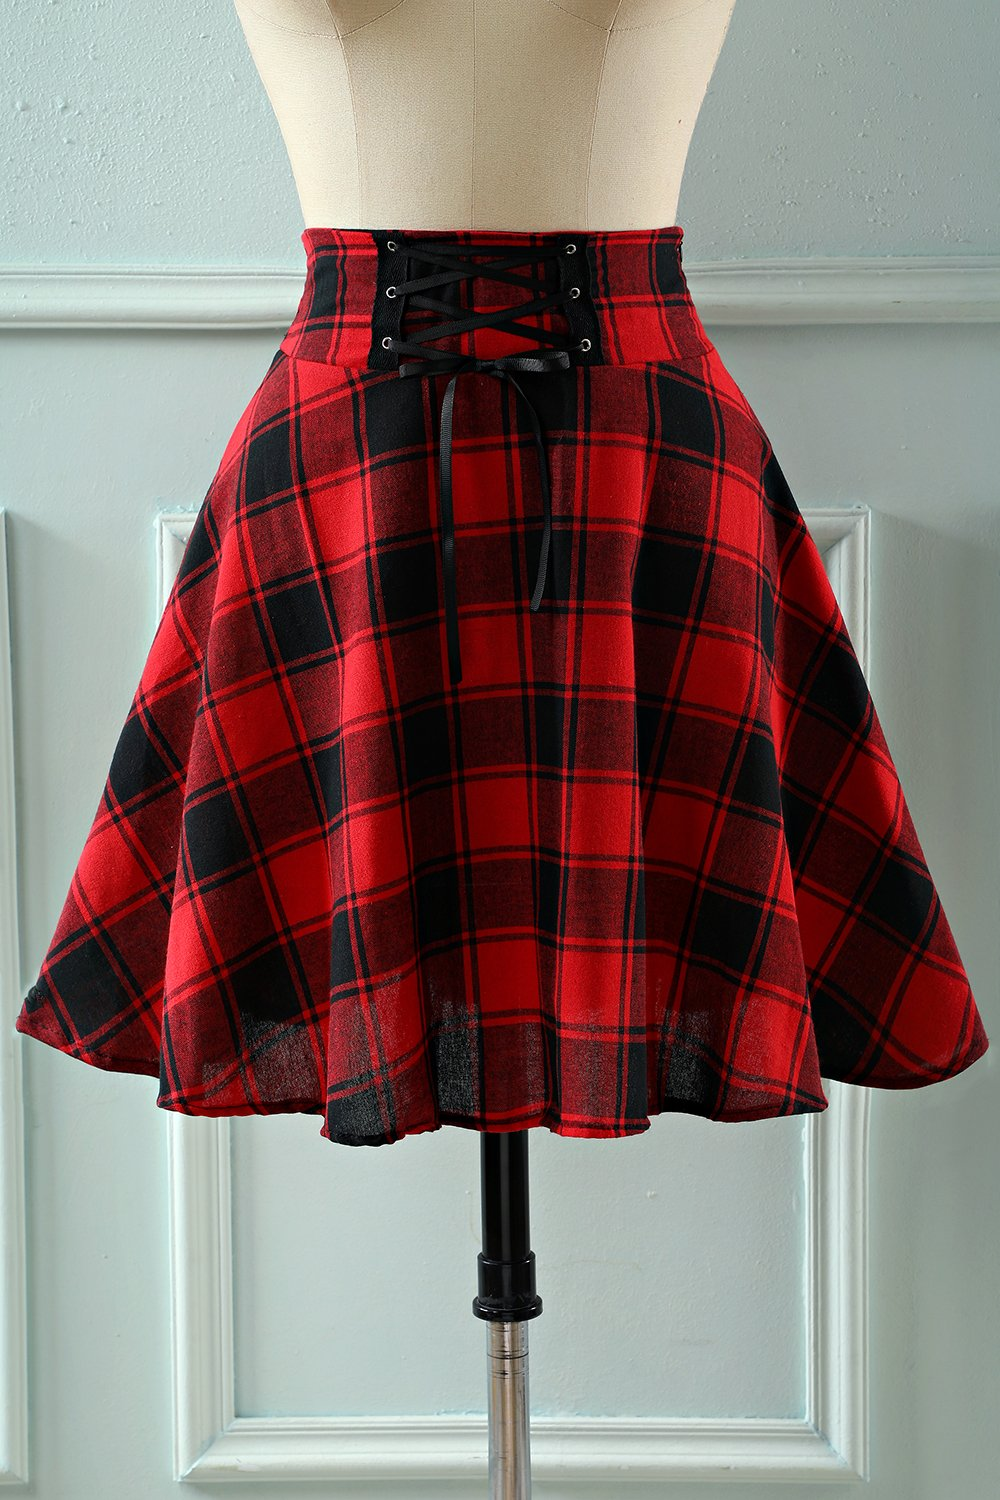 Rode Plaid Hoge Taille Rok